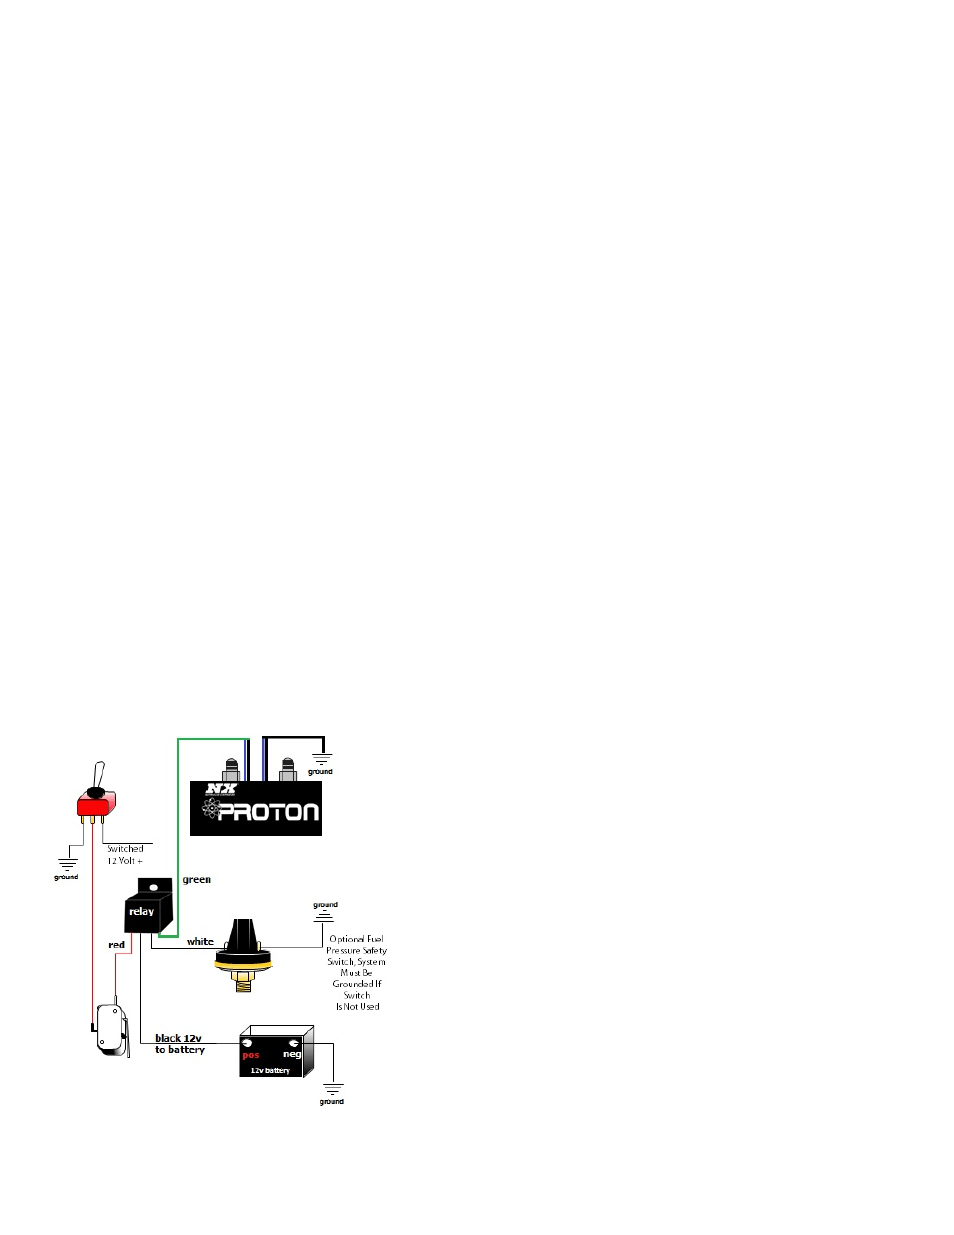 nitrous express proton wiring diagram rigid heddle loom systems user manual page 2 4